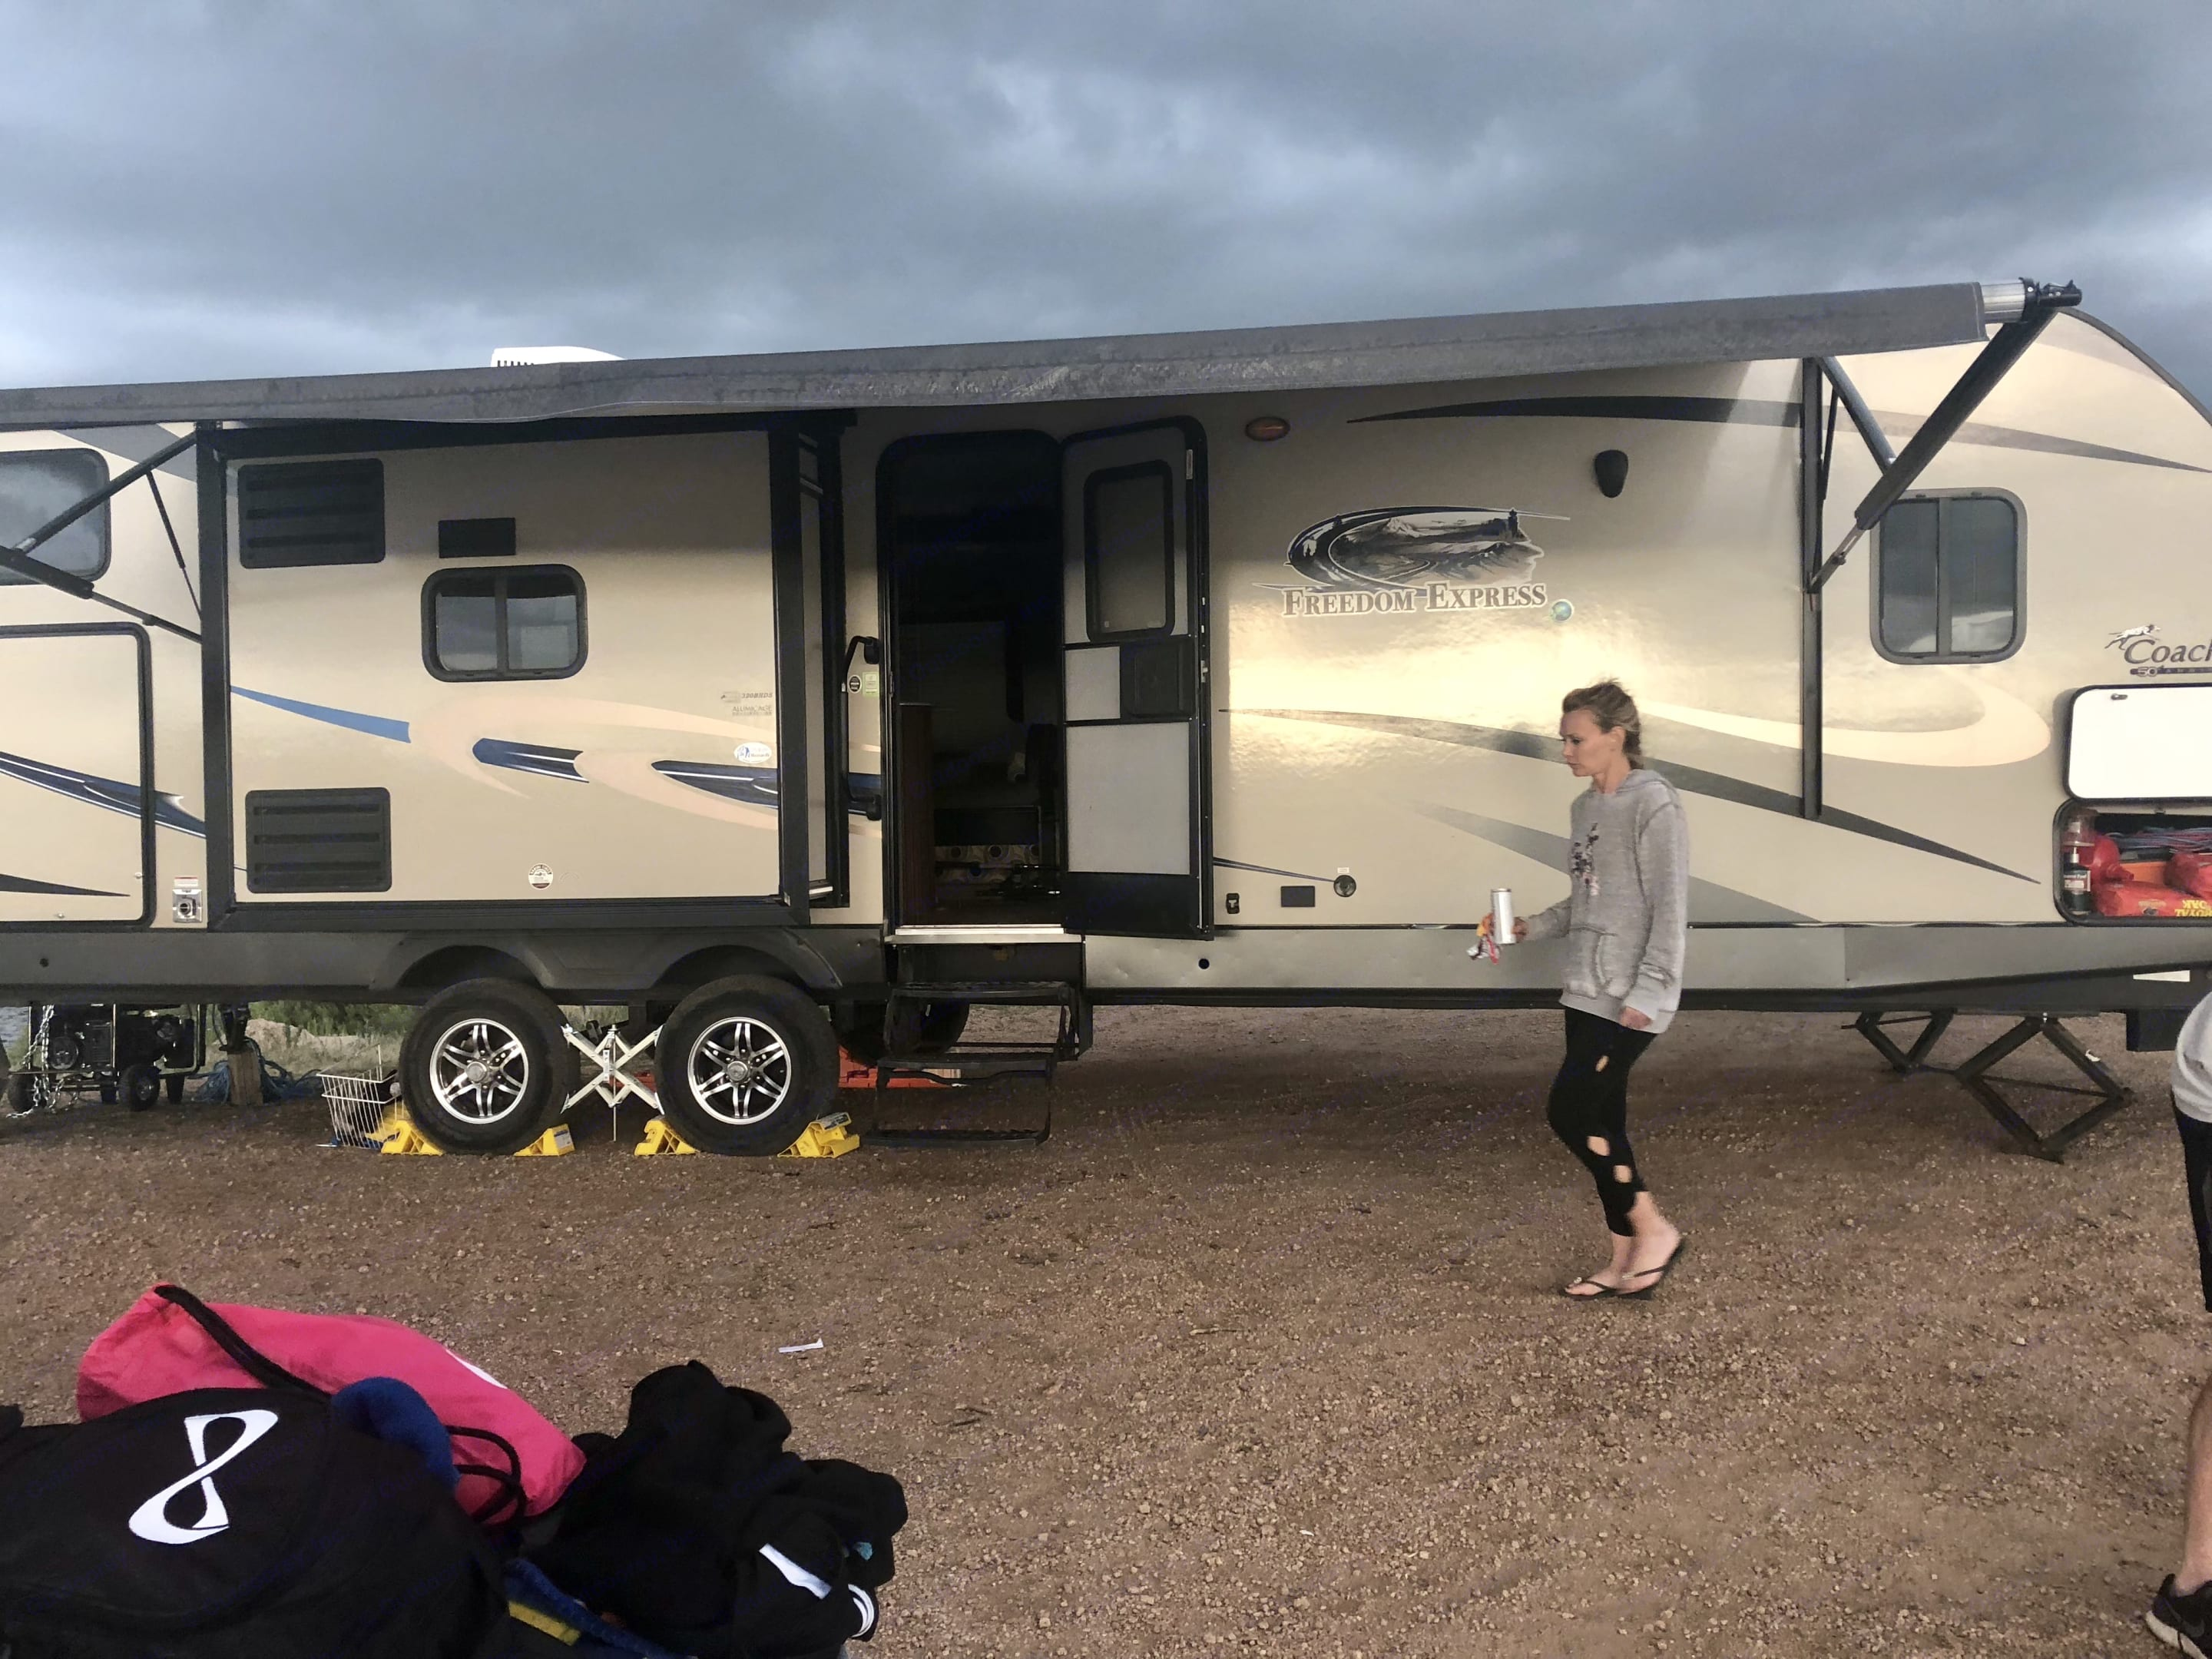 At the lake with the camper . Coachman Freedom express 2014